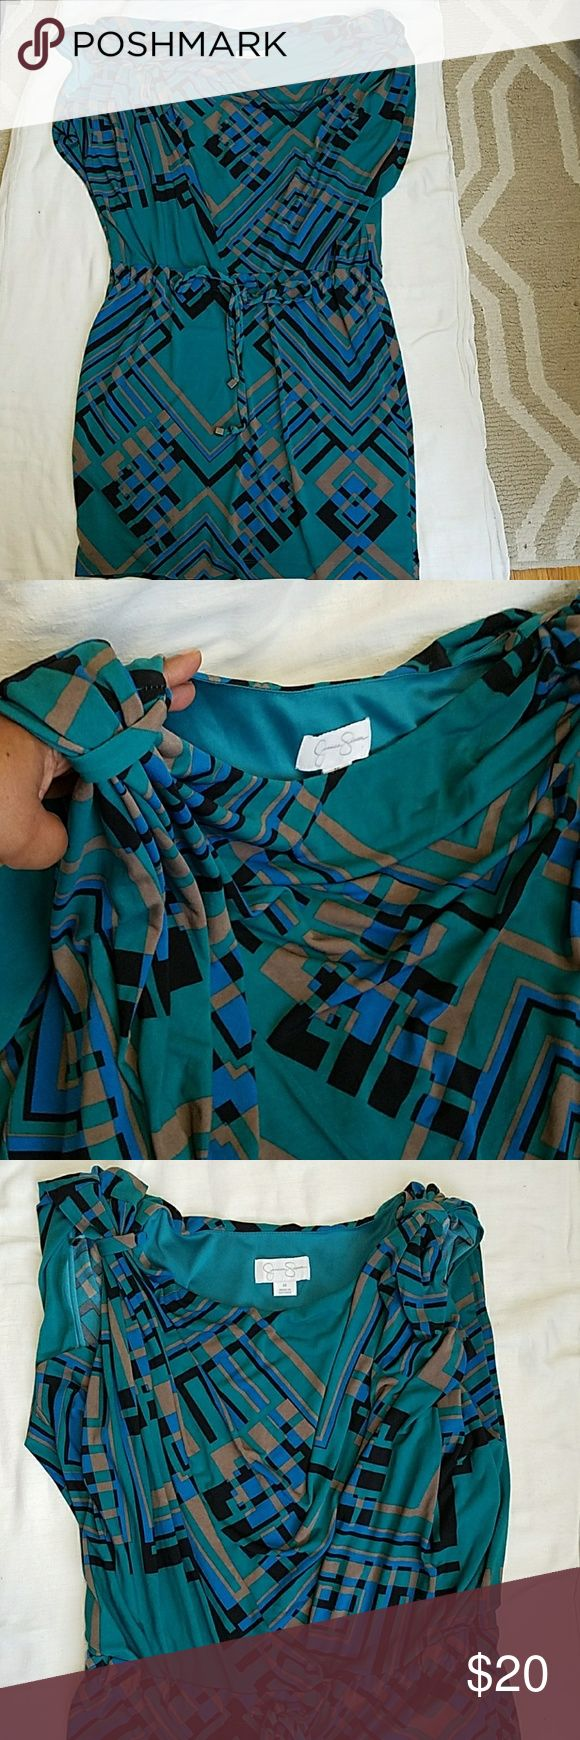 Adorable Jessica Simpson dress In great condition Jessica Simpson Dresses